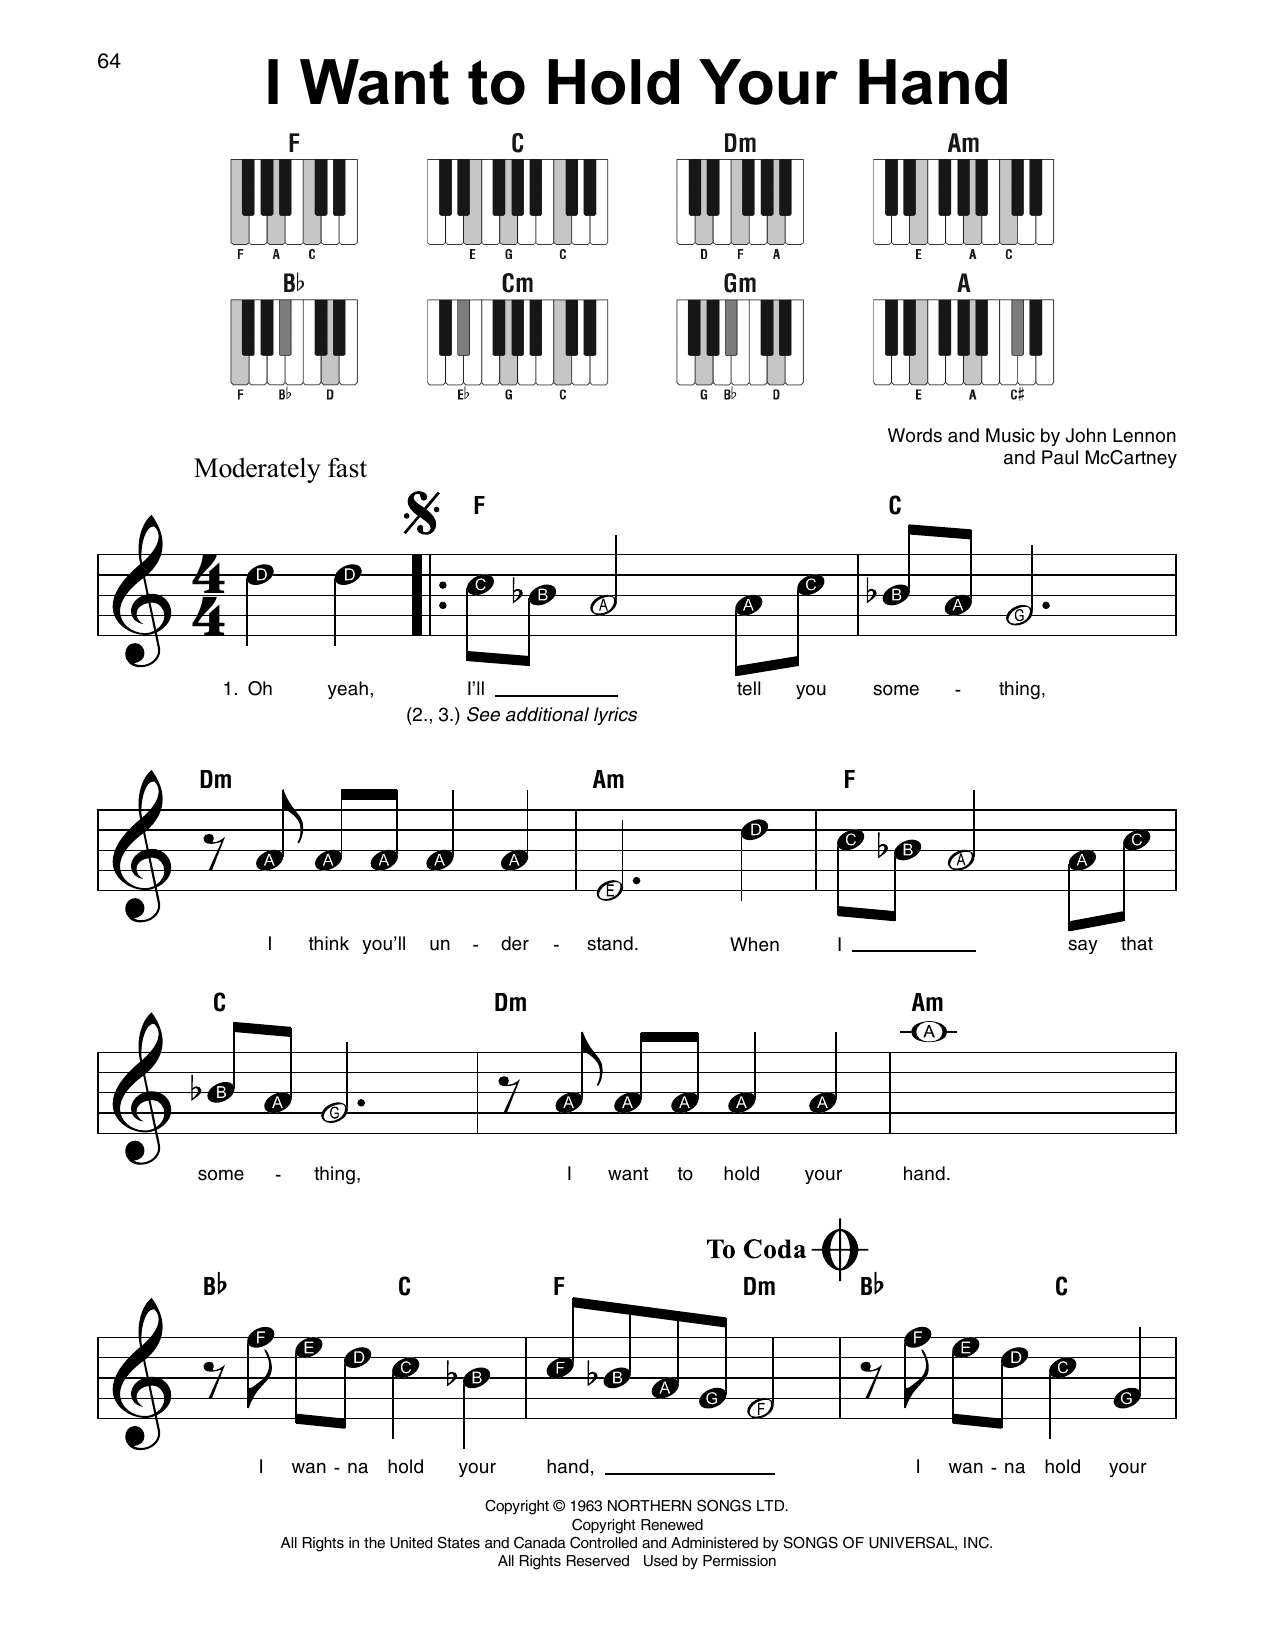 The Beatles - I Want To Hold Your Hand sheet music